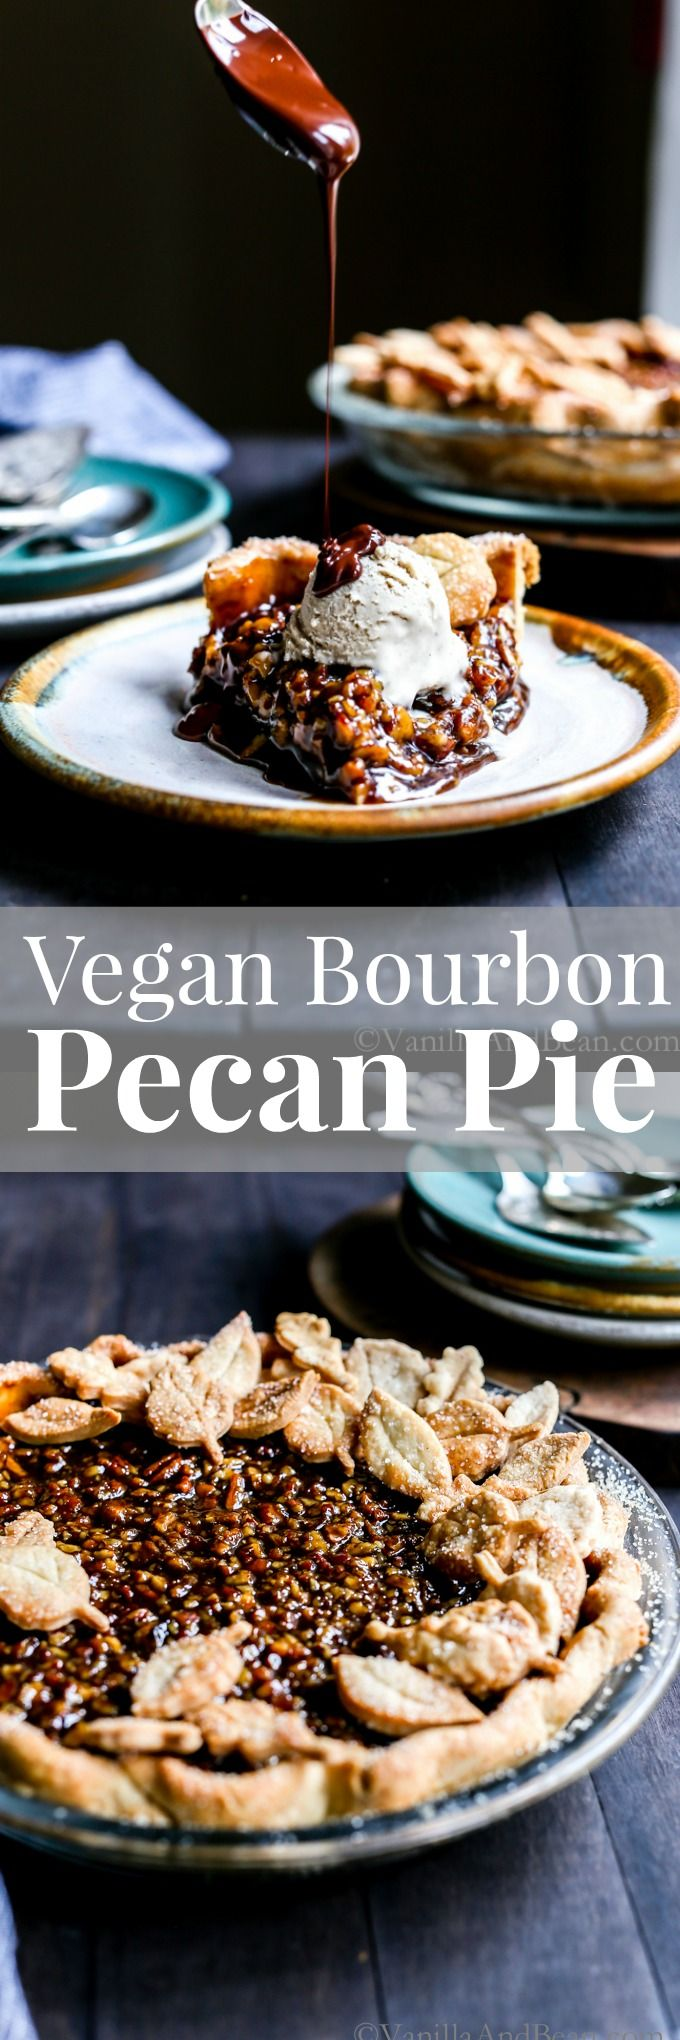 A holiday treat, this Vegan Bourbon Pecan Pie is dairy free, and egg free with a hint of molasses and a taste of bourbon! via @vanillaandbean